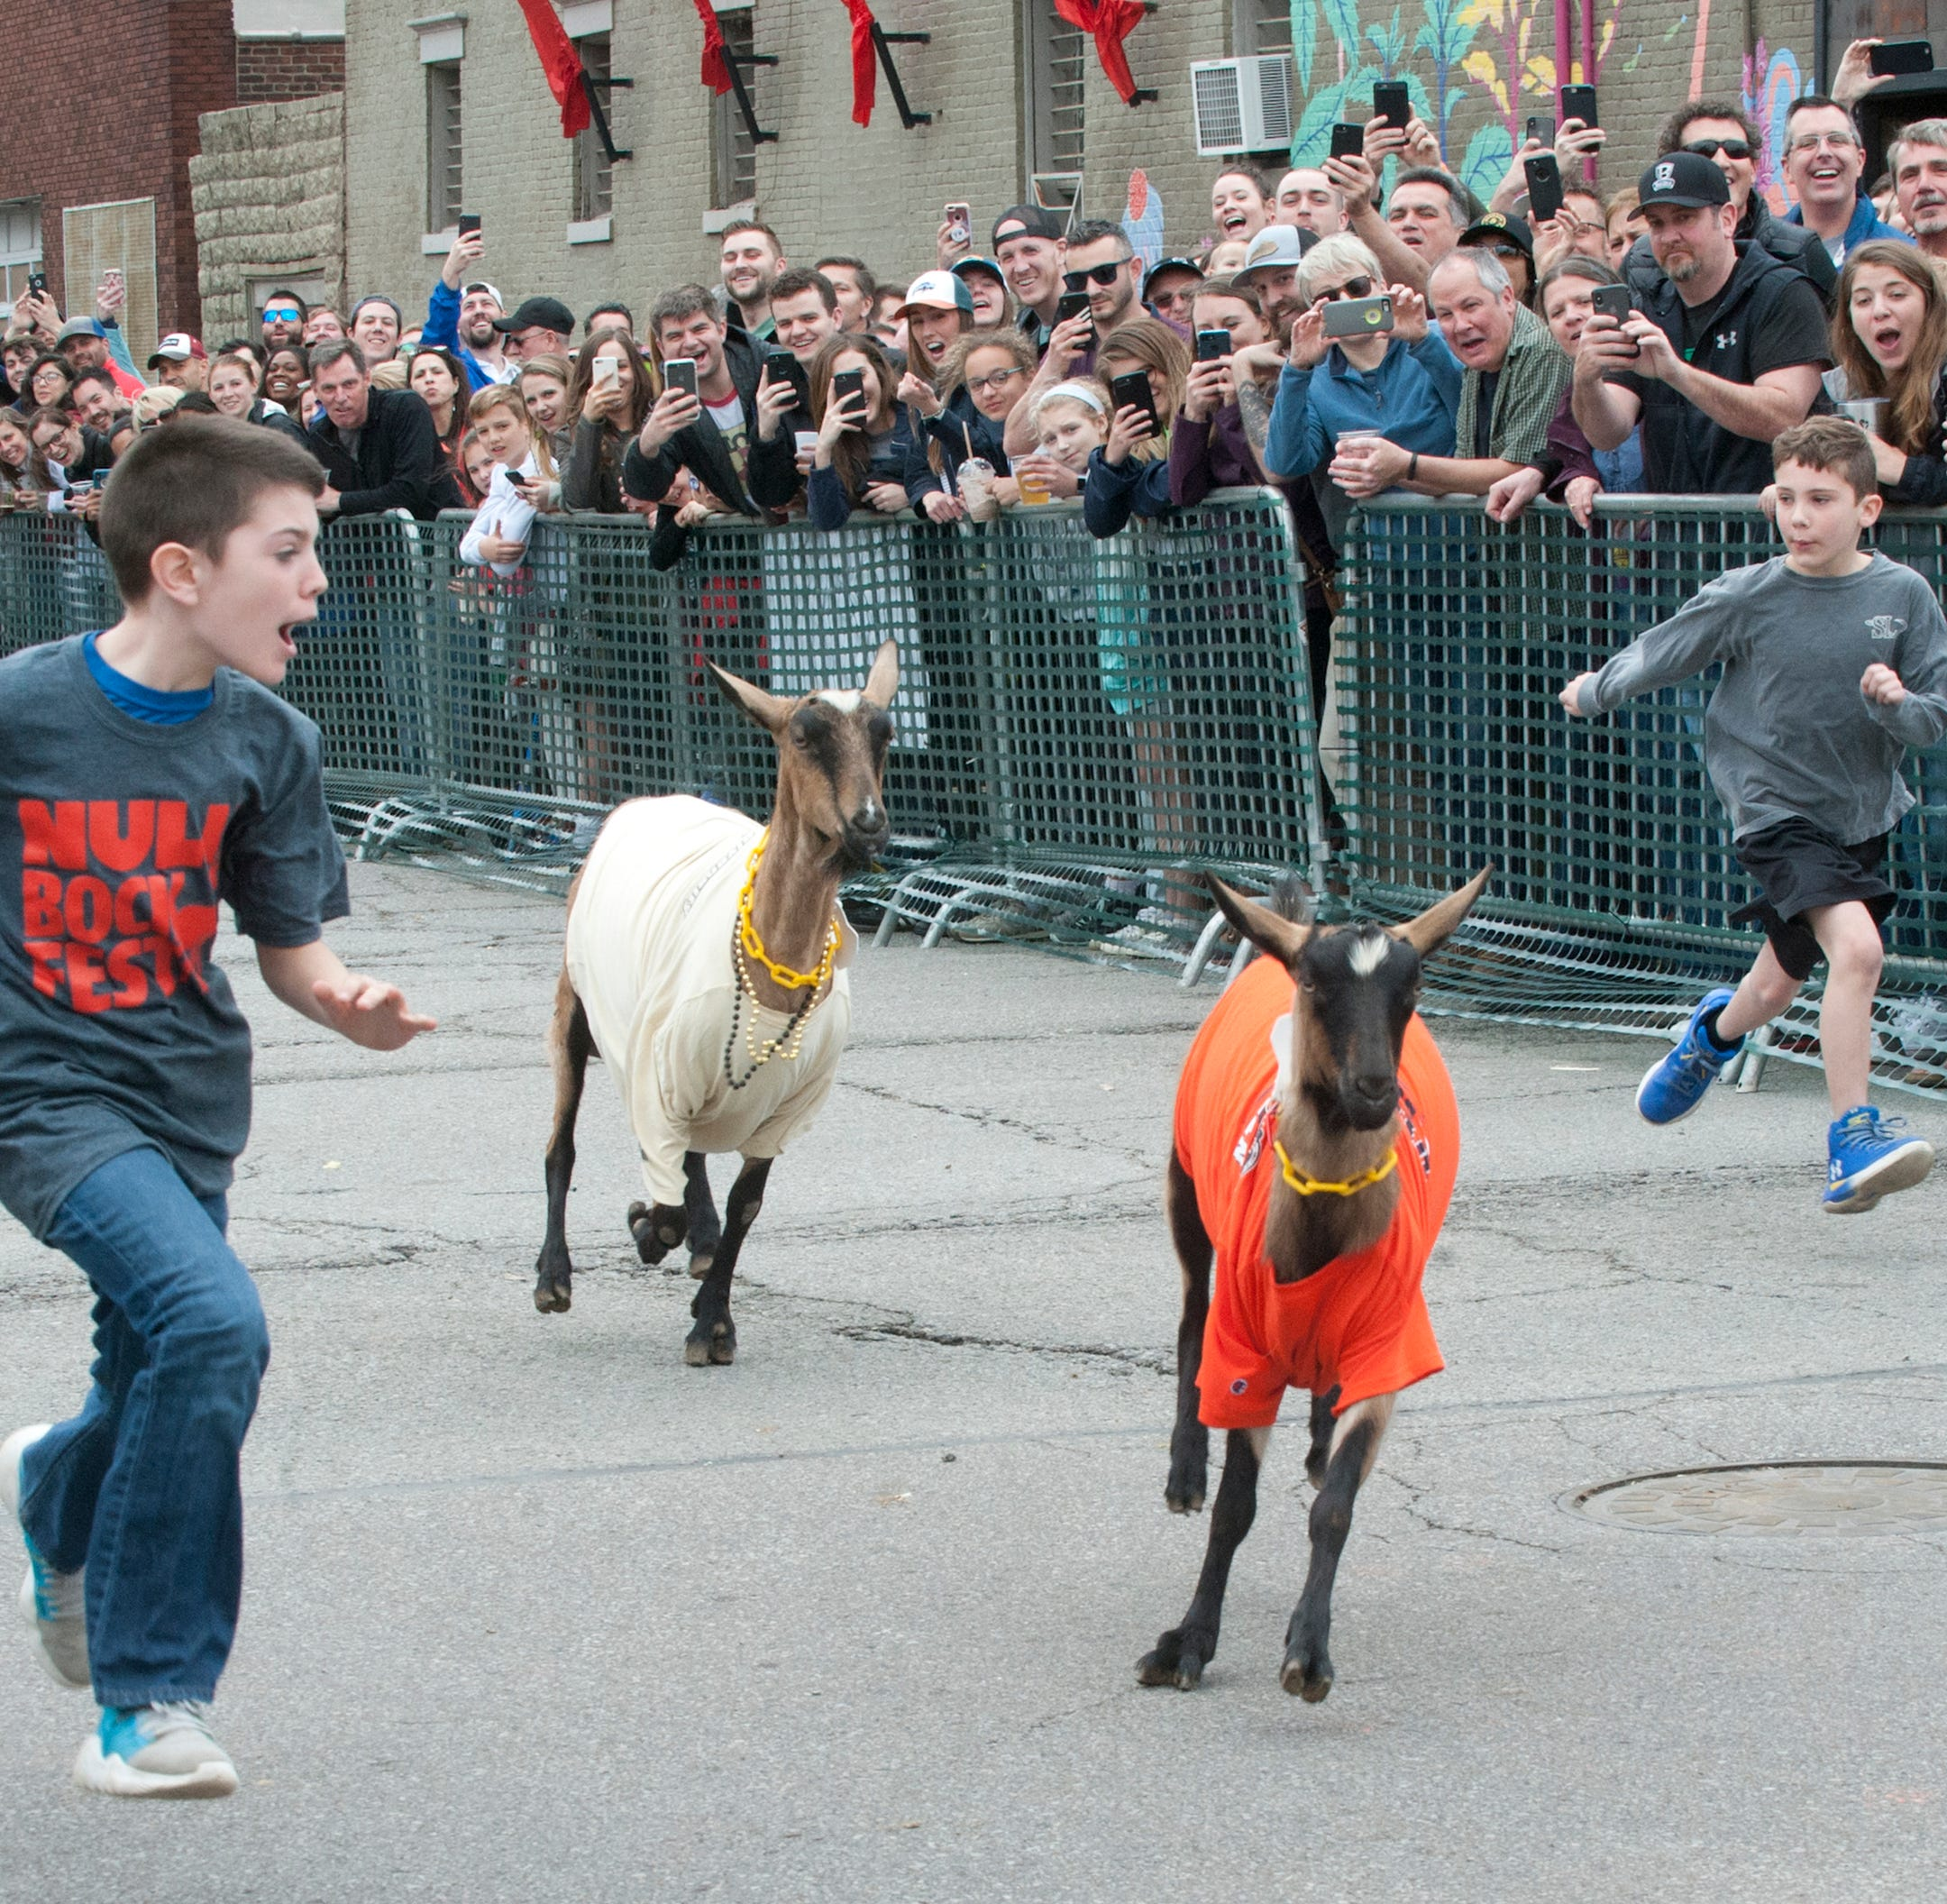 Beer, fun and goats (!) rule at NuLu Bock Fest in downtown Louisville